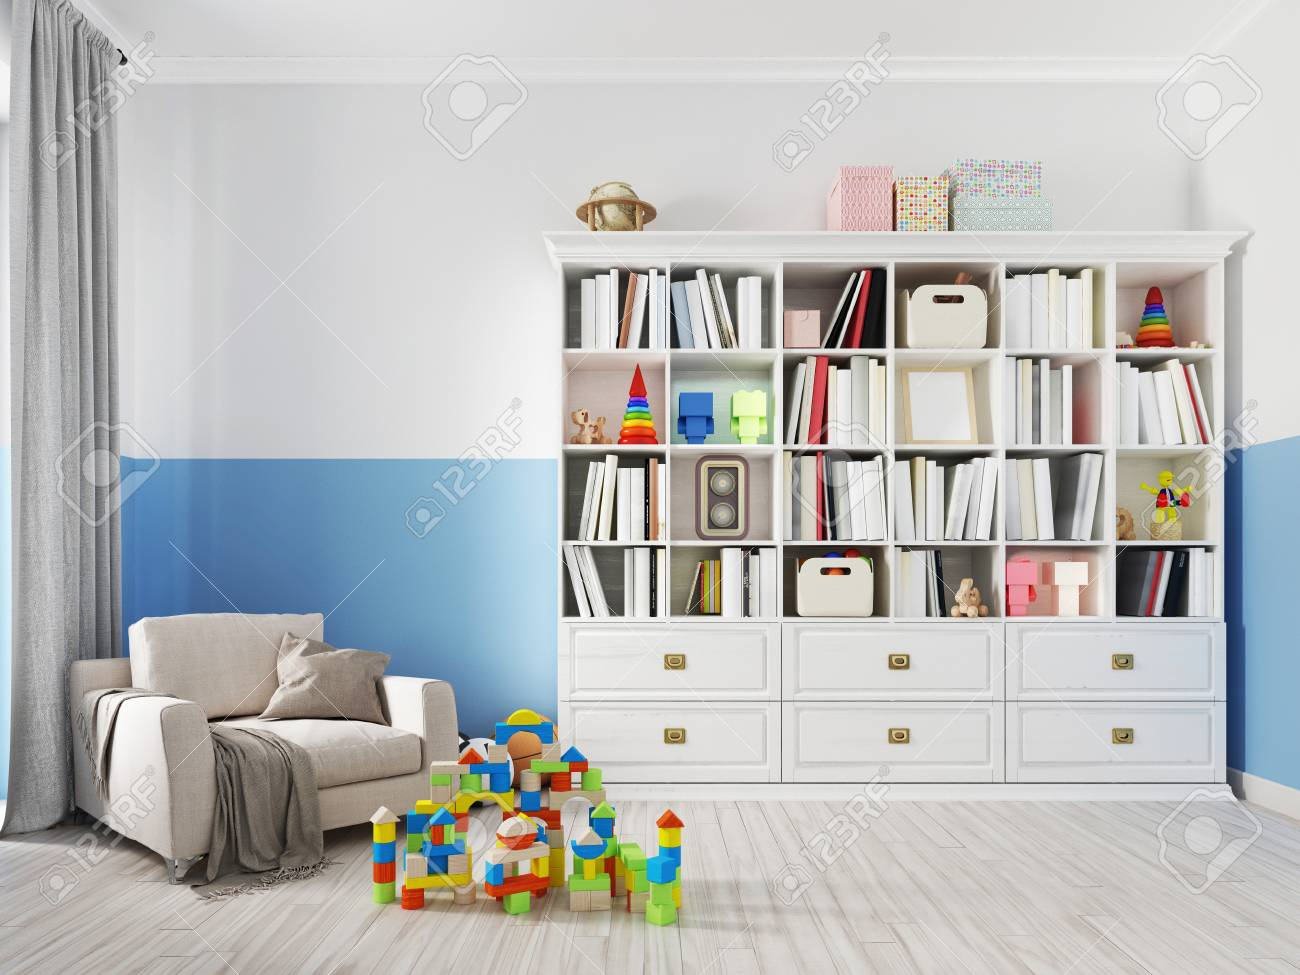 Colorful Children S Room Interior With Bookcase Bed Pillow